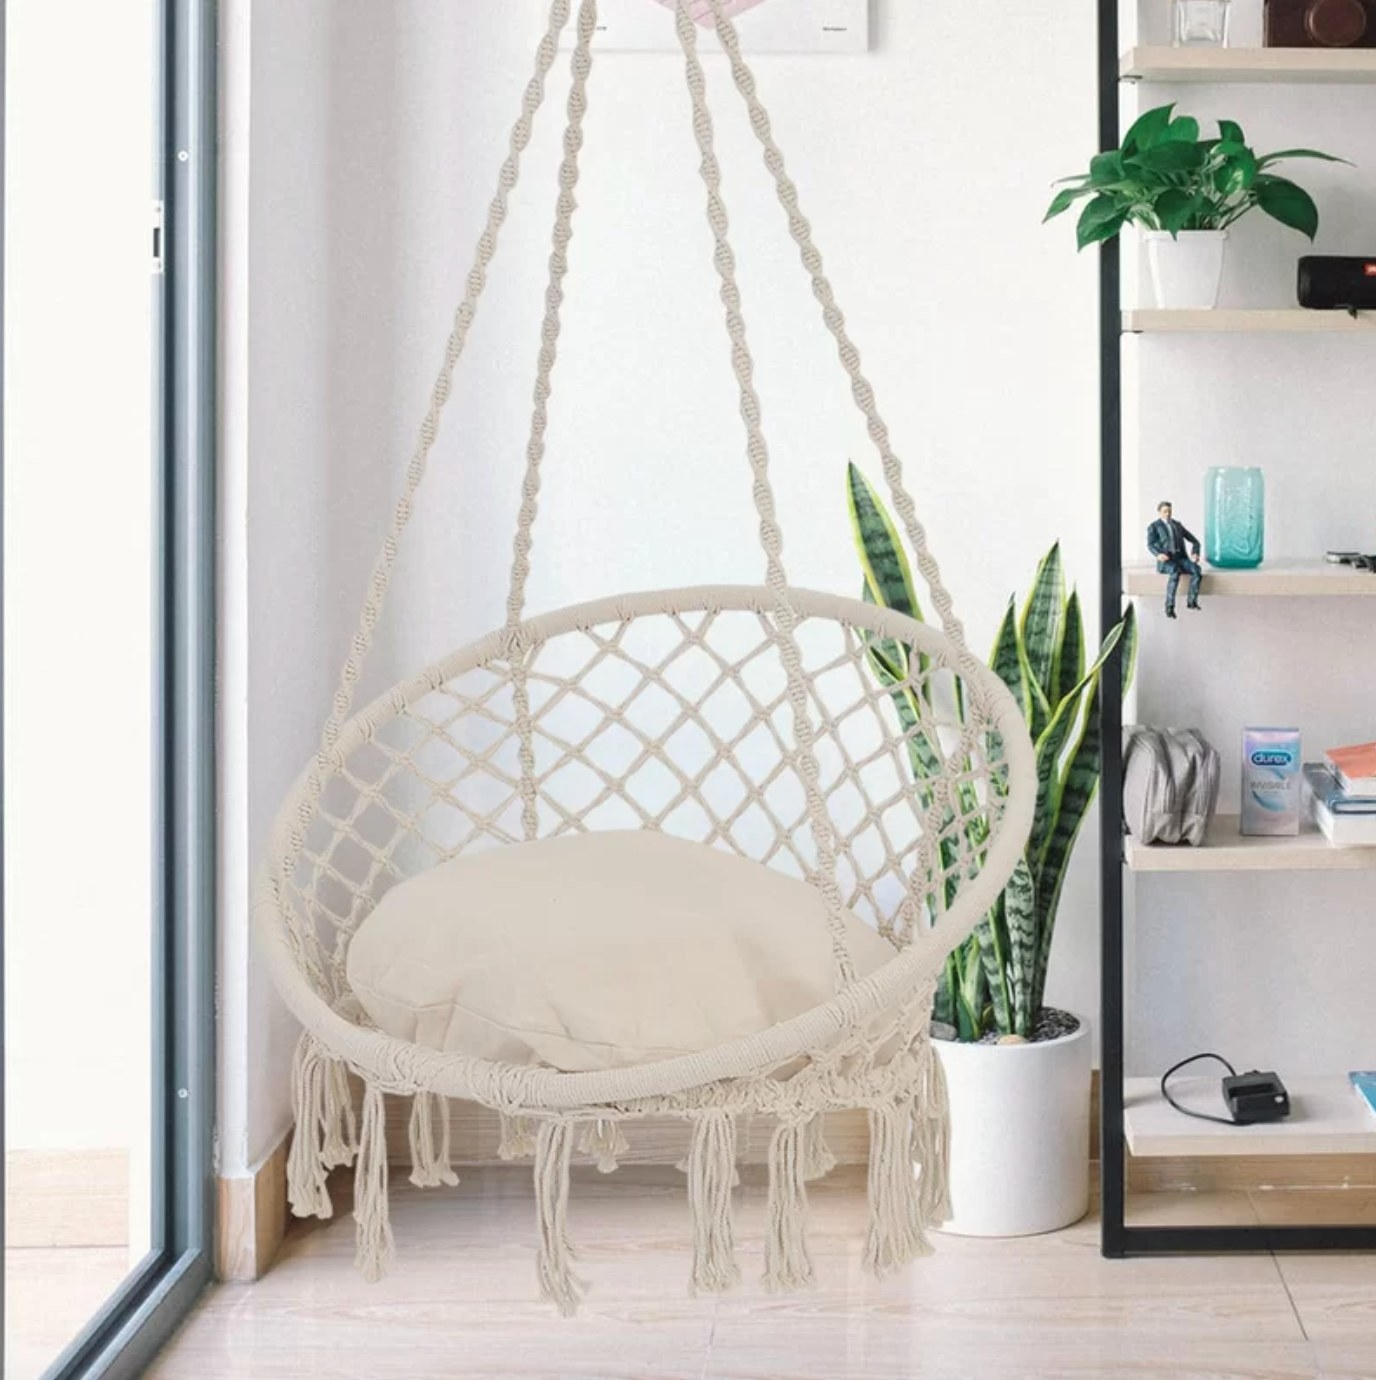 The hanging hammock chair in beige with a comfy pillow